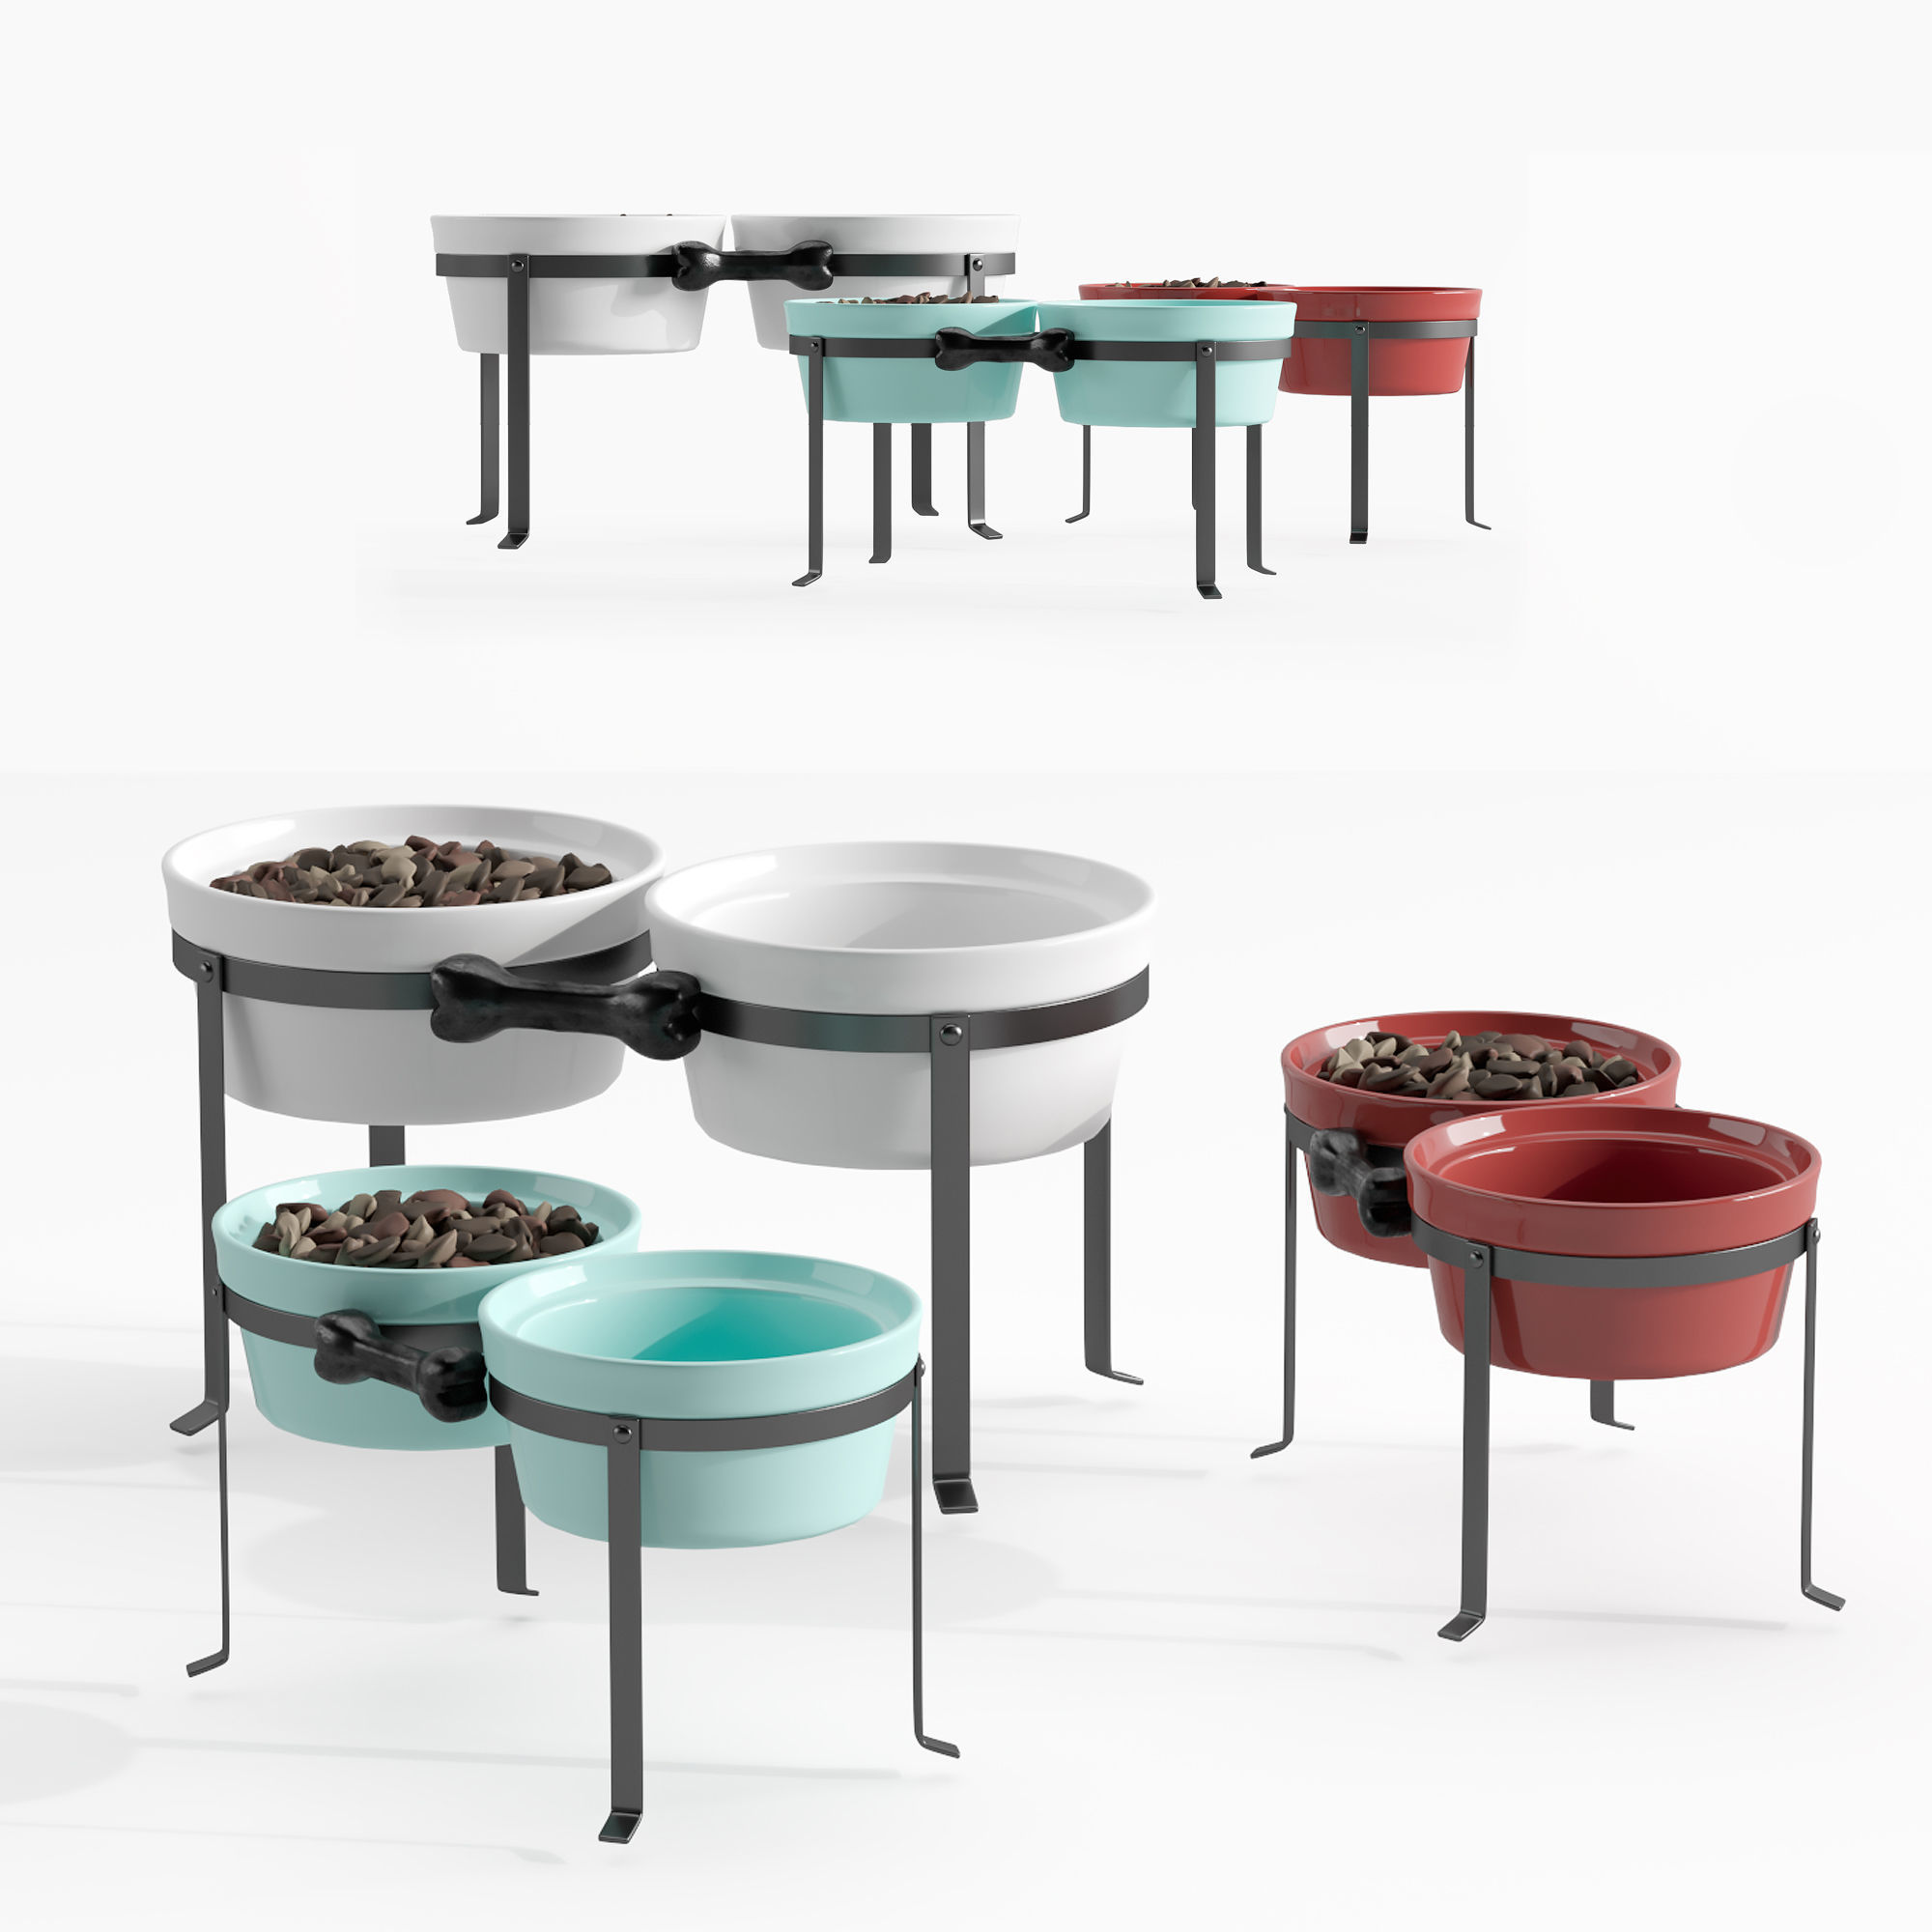 Dog feeding bowls and stand